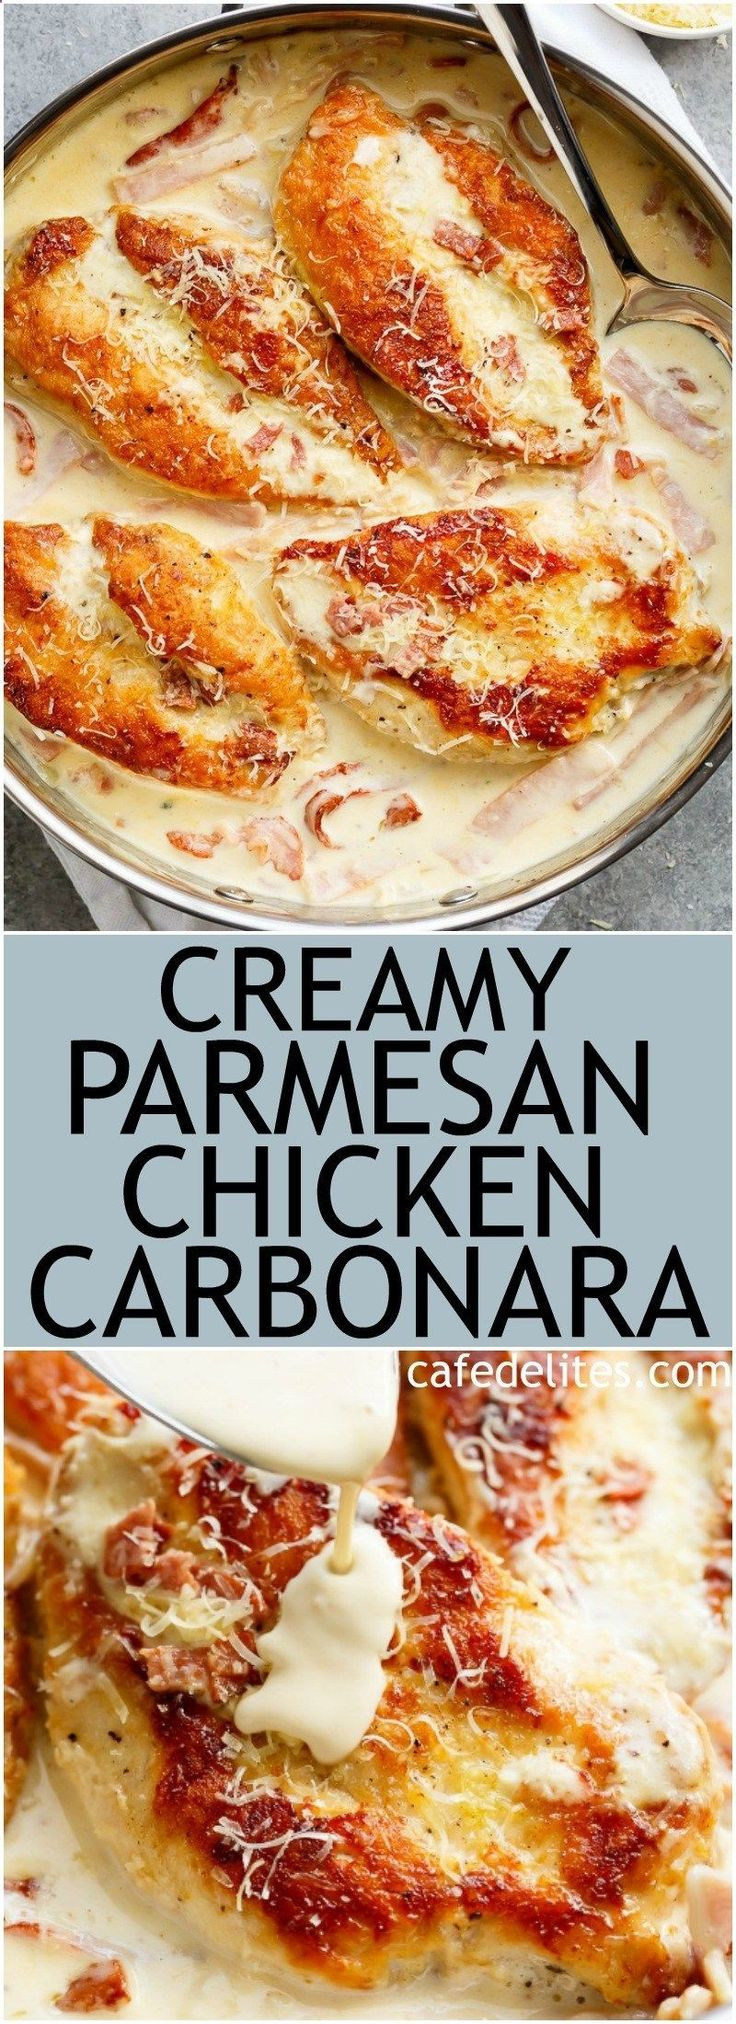 Creamy Parmesan Chicken Carbonara is the ultimate twist! Crispy, golden chicken fillets in a carbonara inspired sauce for a new favourite chicken recipe!   cafedelites.com